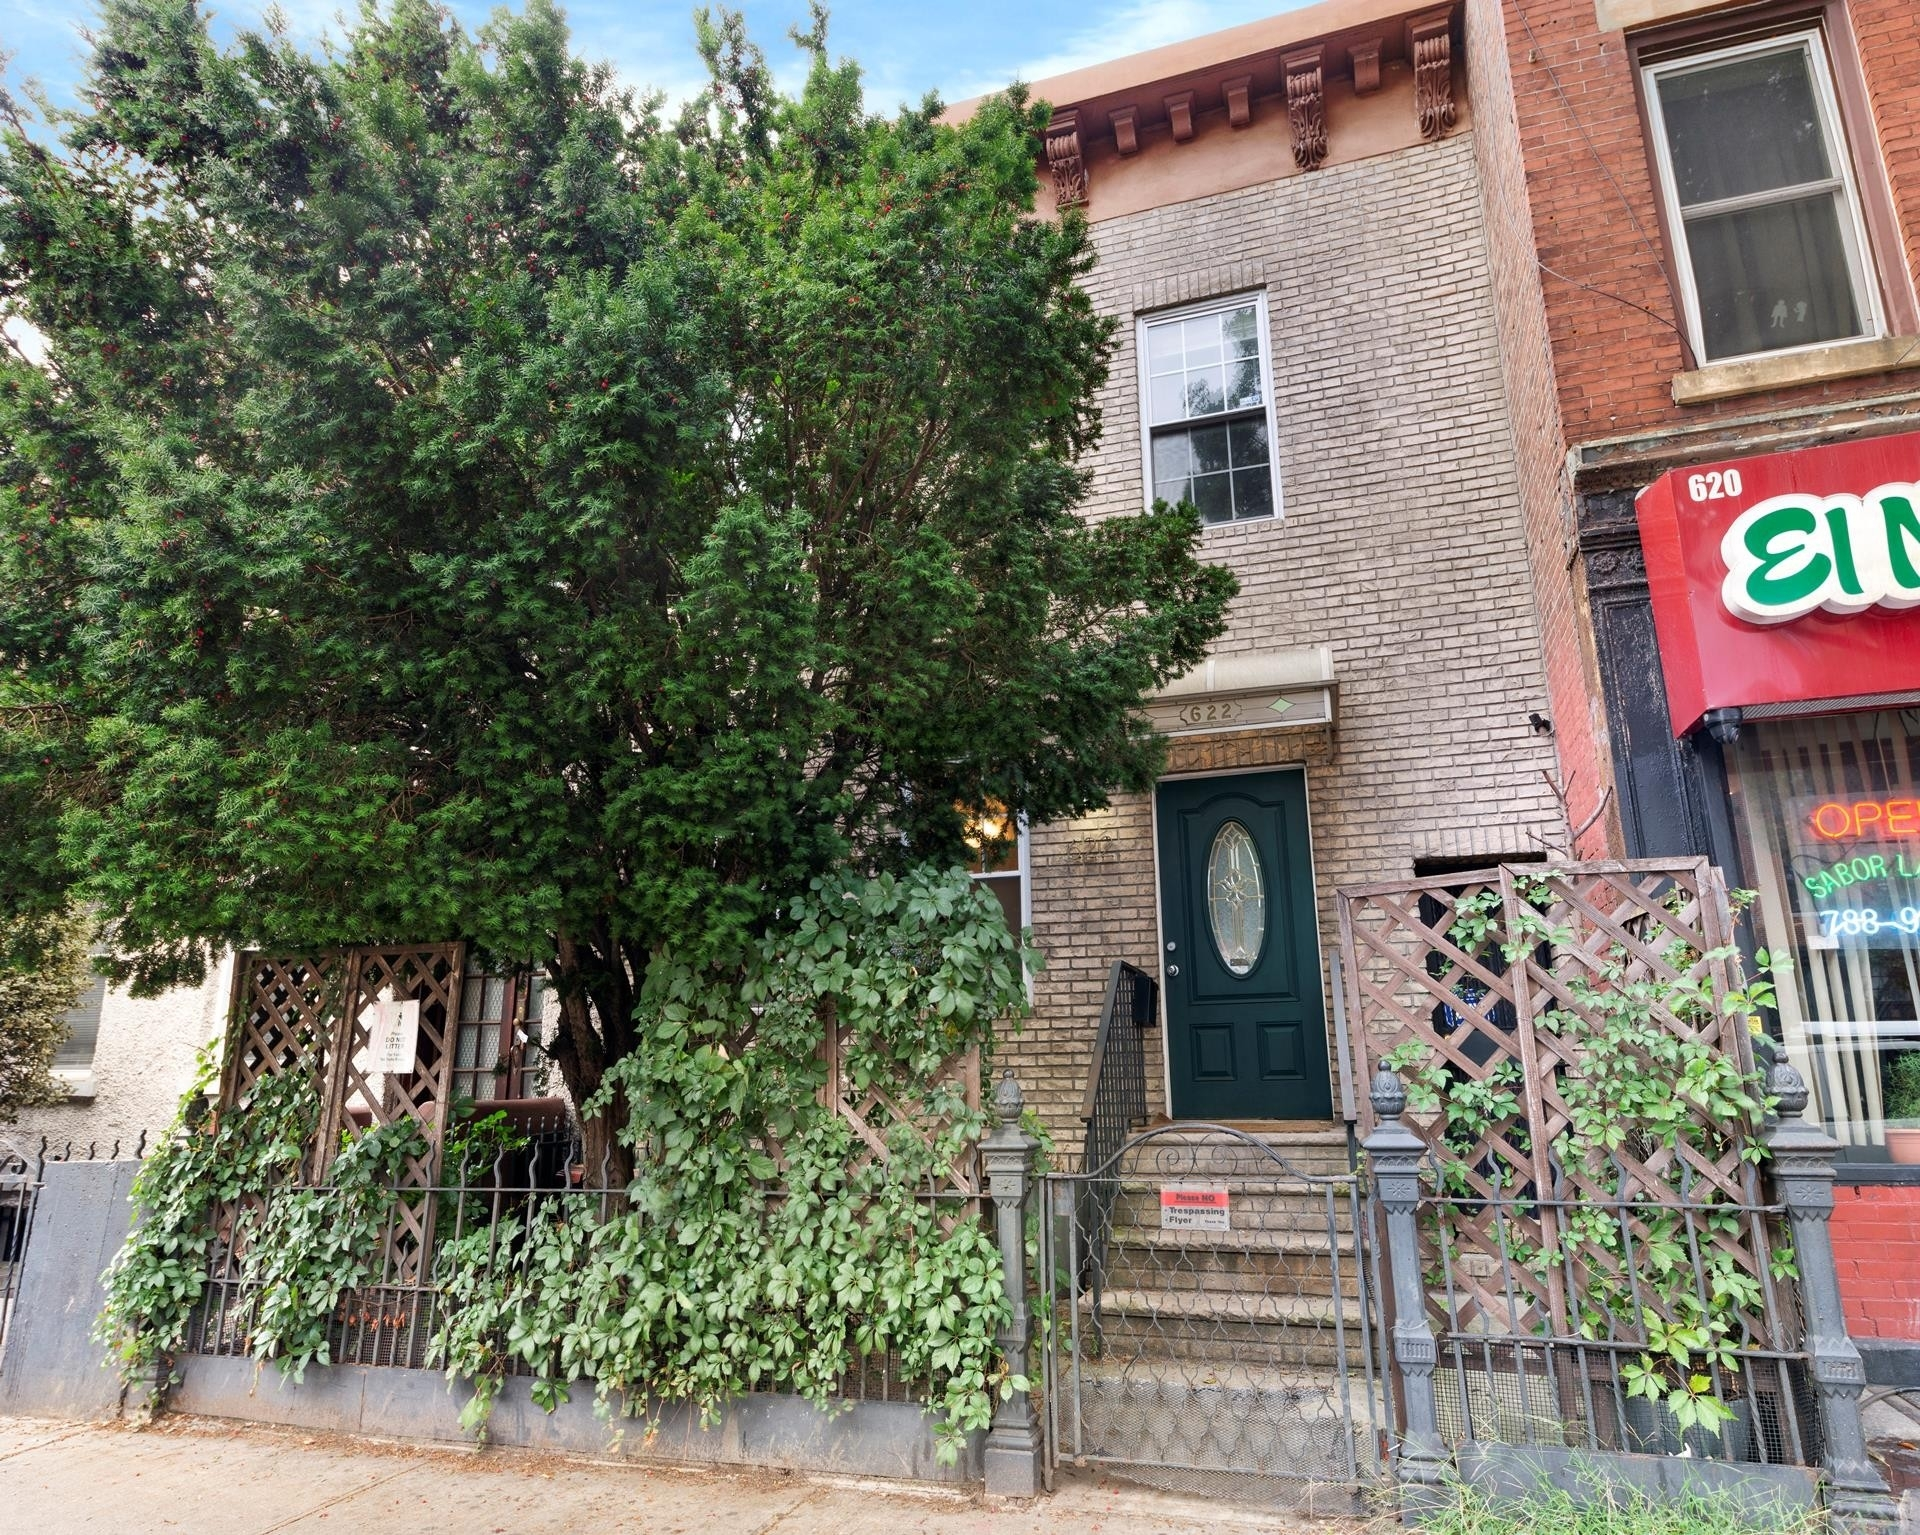 1. 建於622 Fourth Avenue, Greenwood Heights, Brooklyn, NY